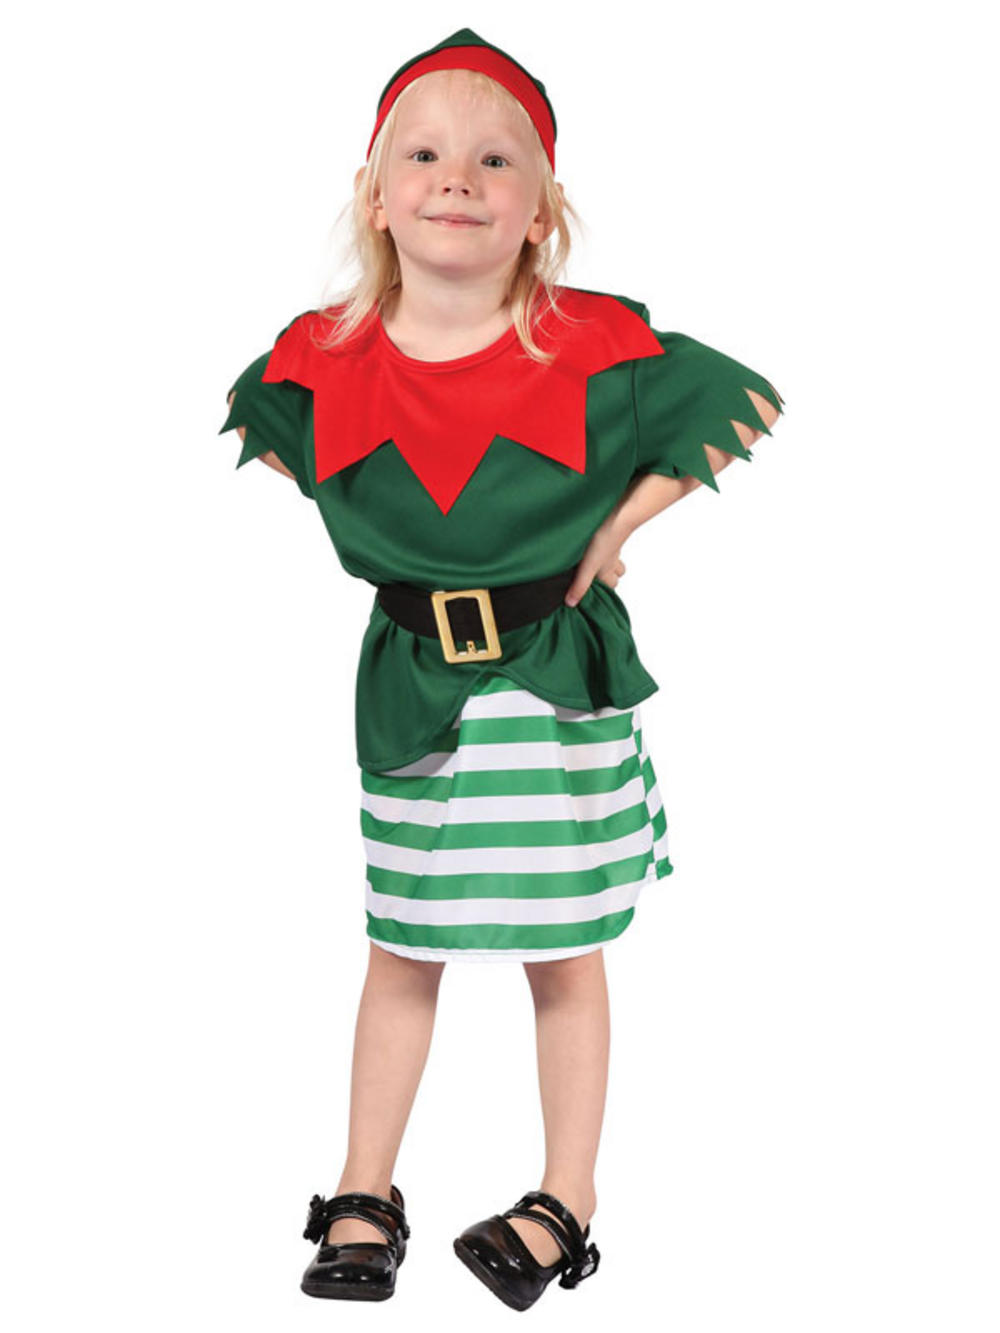 Toddler Kids Elf Costume Kids Girls Christmas Fancy Dress  sc 1 st  Meningrey : elf costume toddler  - Germanpascual.Com